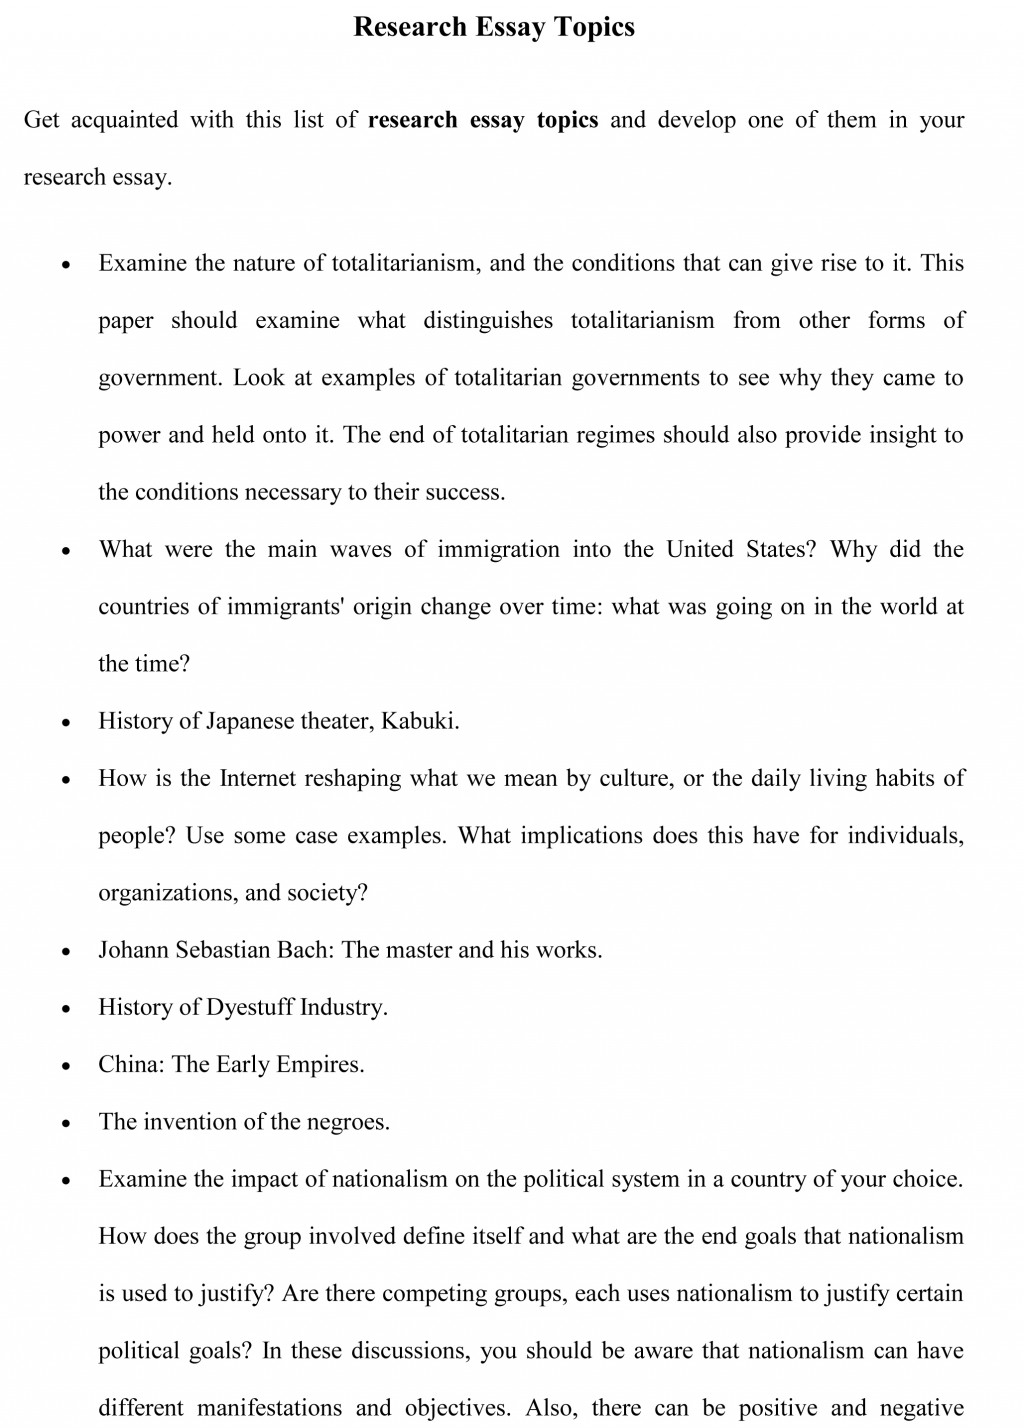 007 Research Essay Topics Sample Paper Good For College Dreaded English Class Large